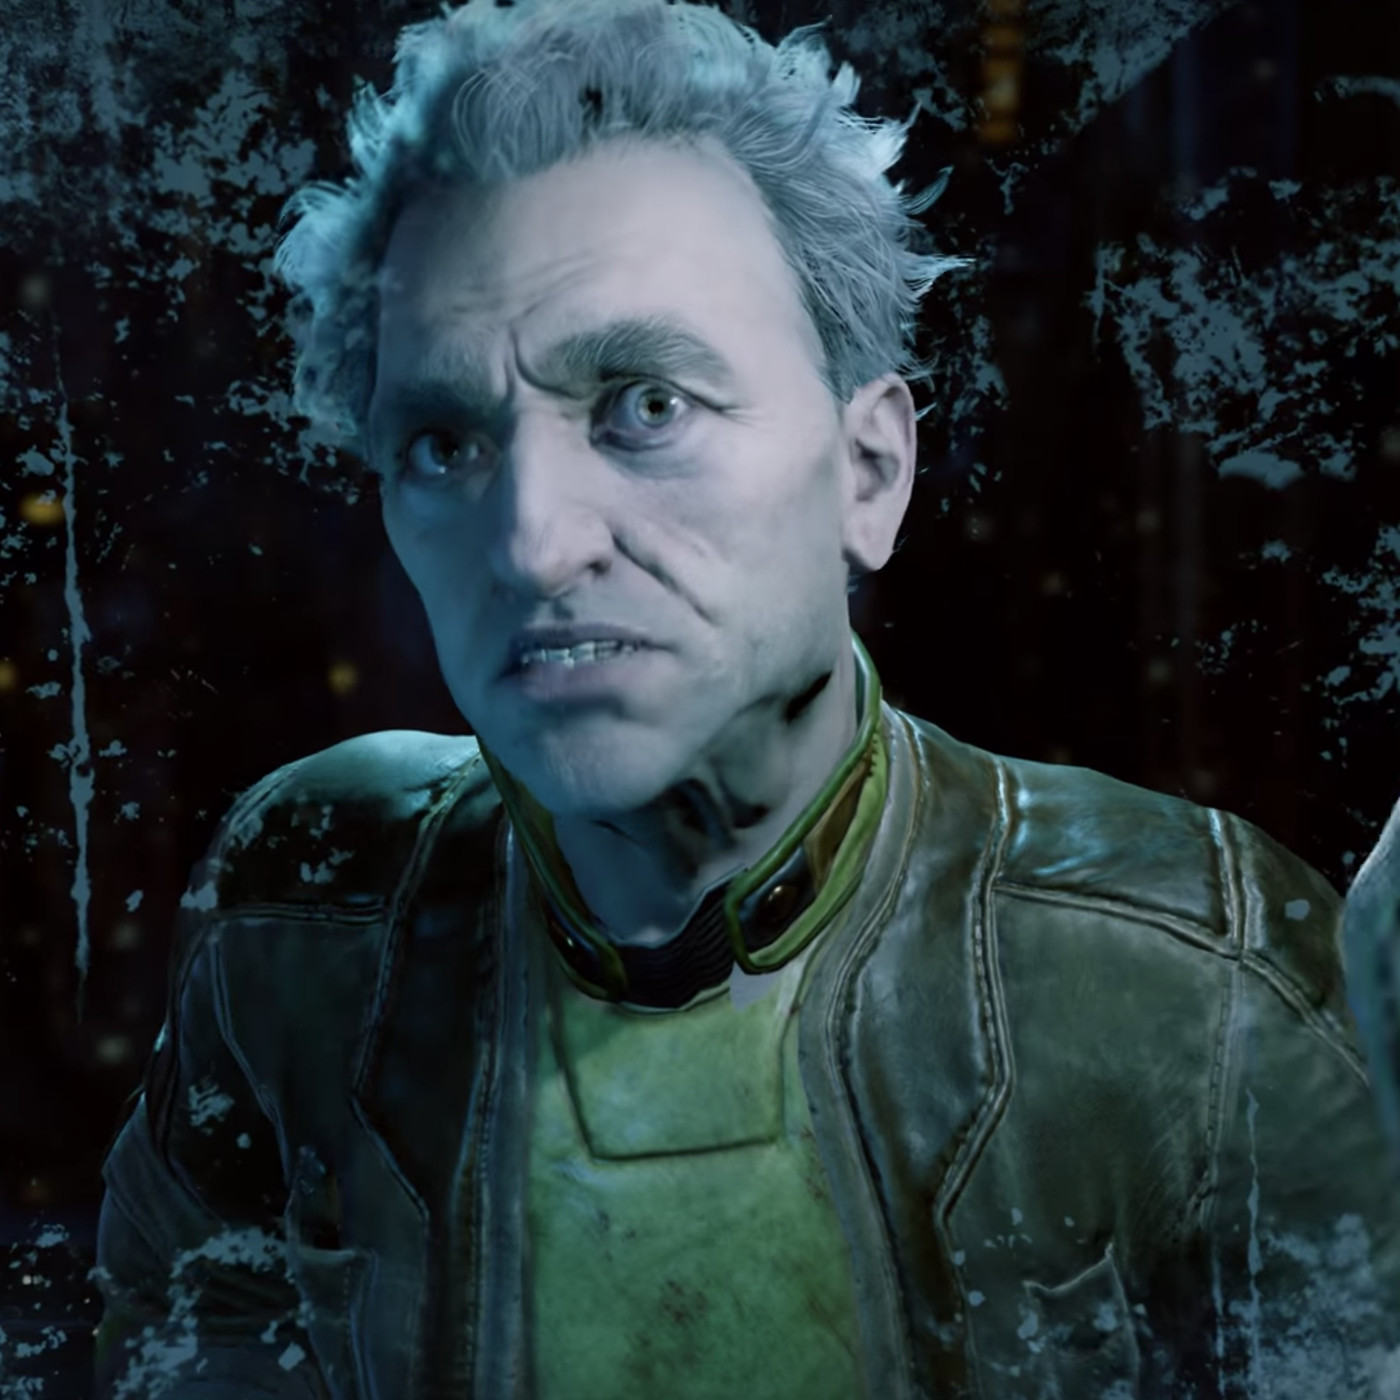 Obsidian's The Outer Worlds looks like sci-fi Fallout - The Verge